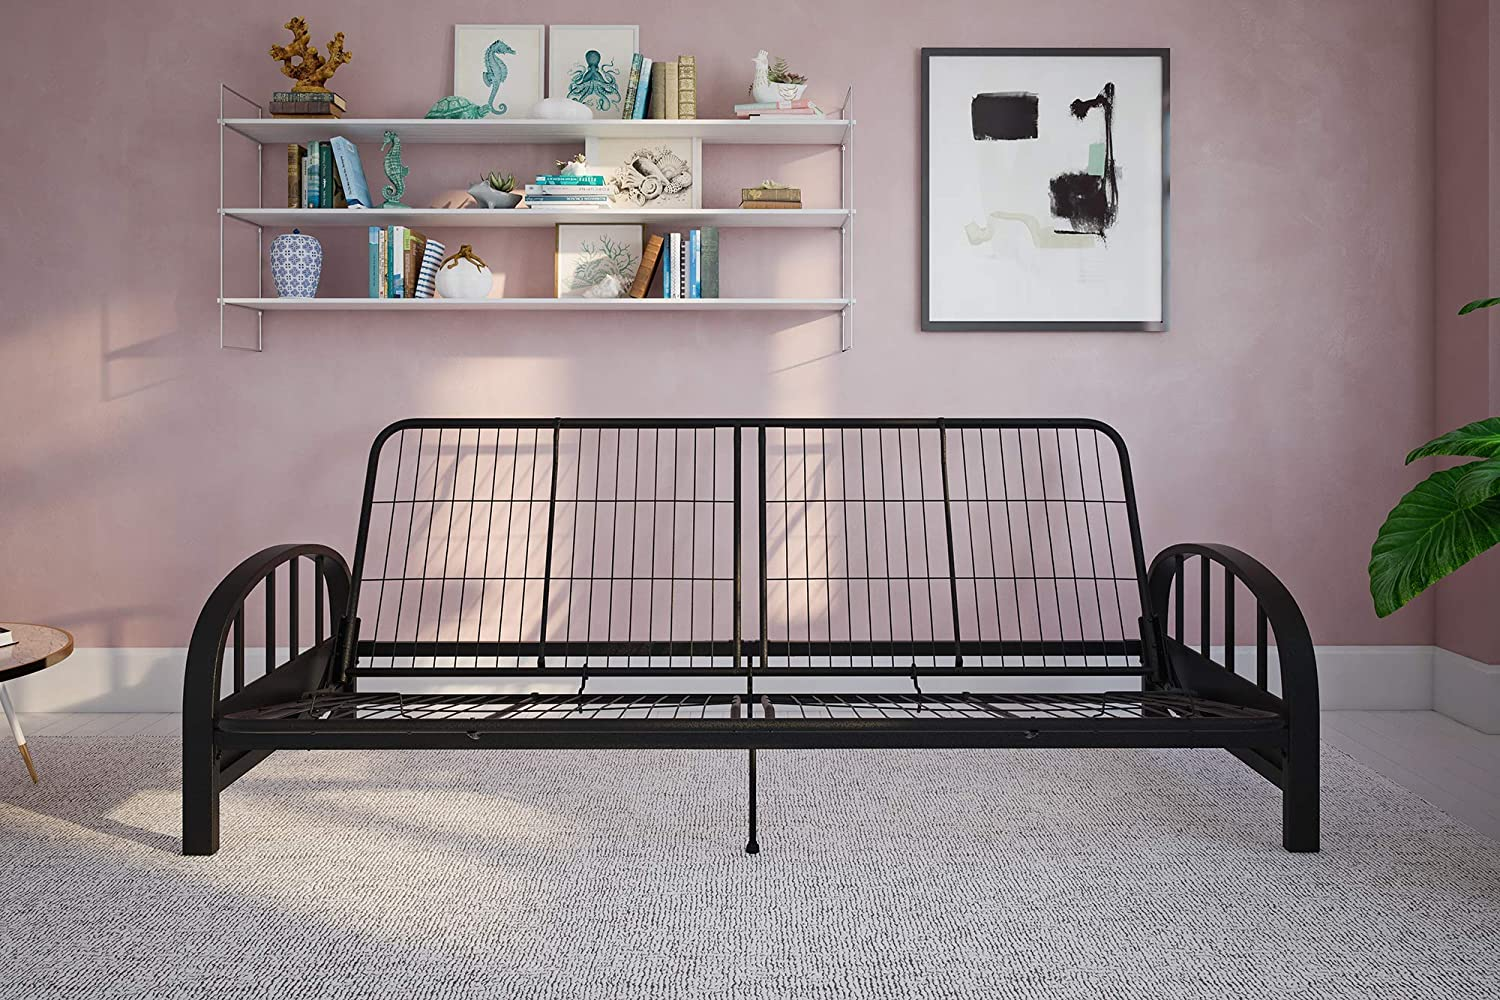 Top 10 Best Futon Frames Reviews in 2020 5